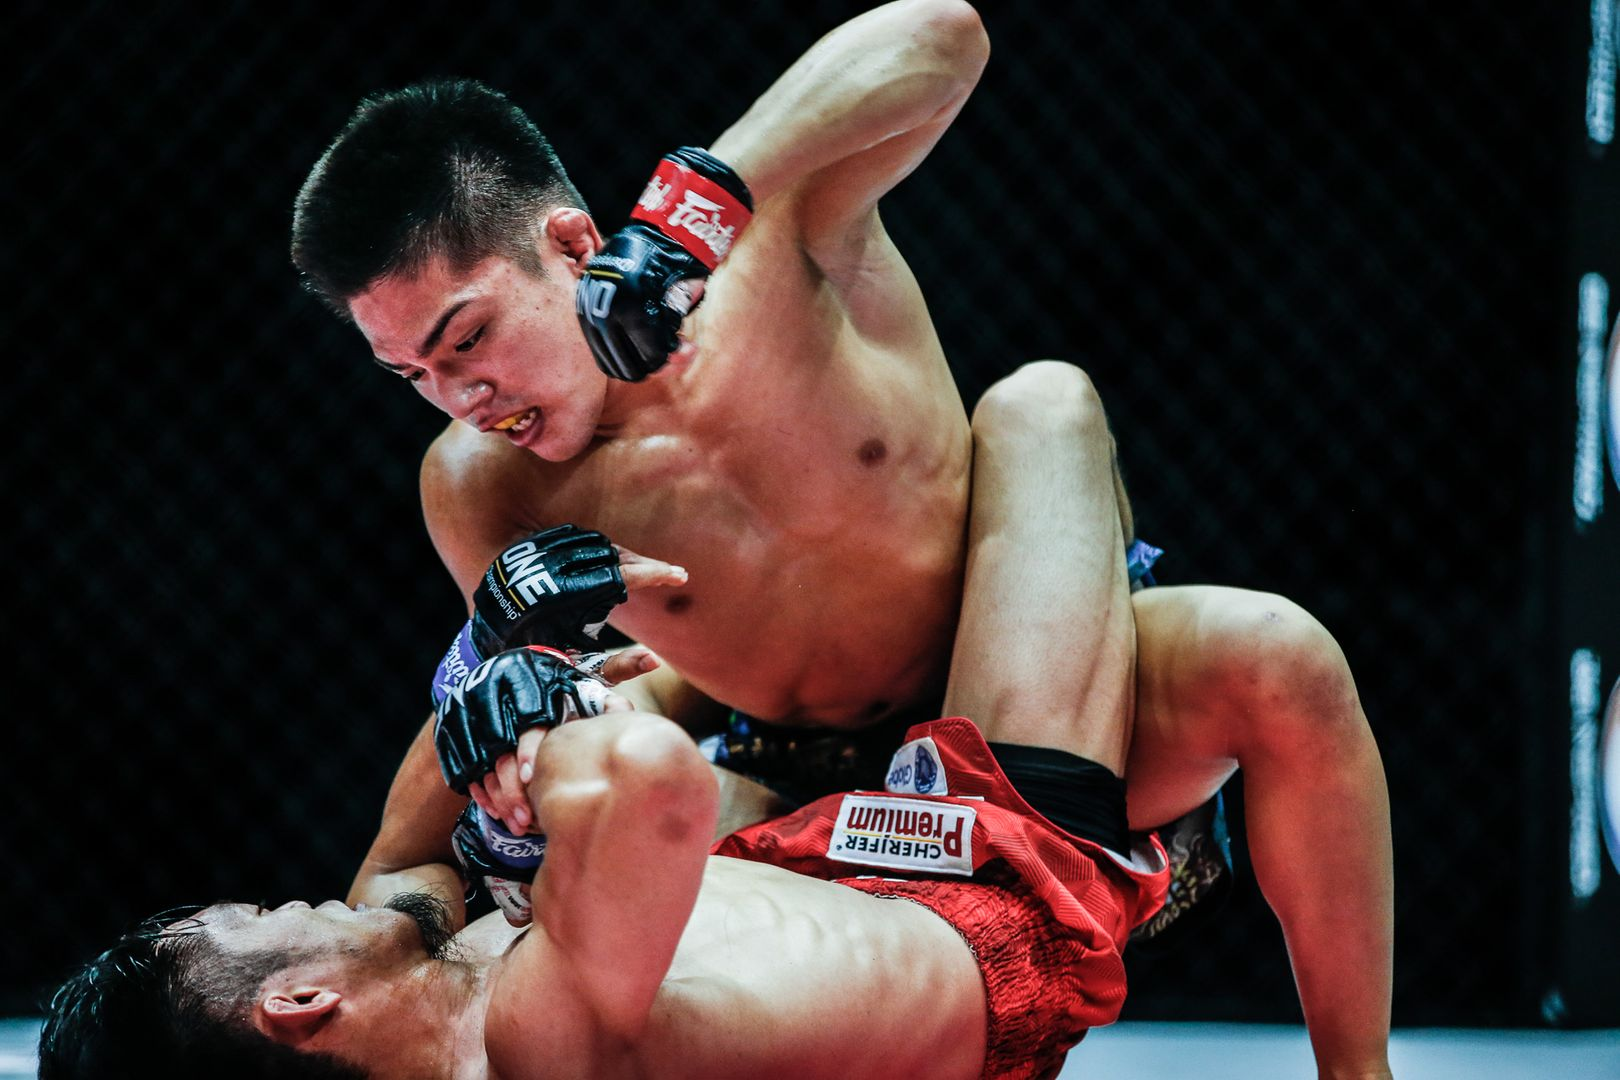 Japanese MMA fighter Hiroba Minowa squares off against Filipino MMA fighter Lito Adiwang at ONE: INSIDE THE MATRIX III